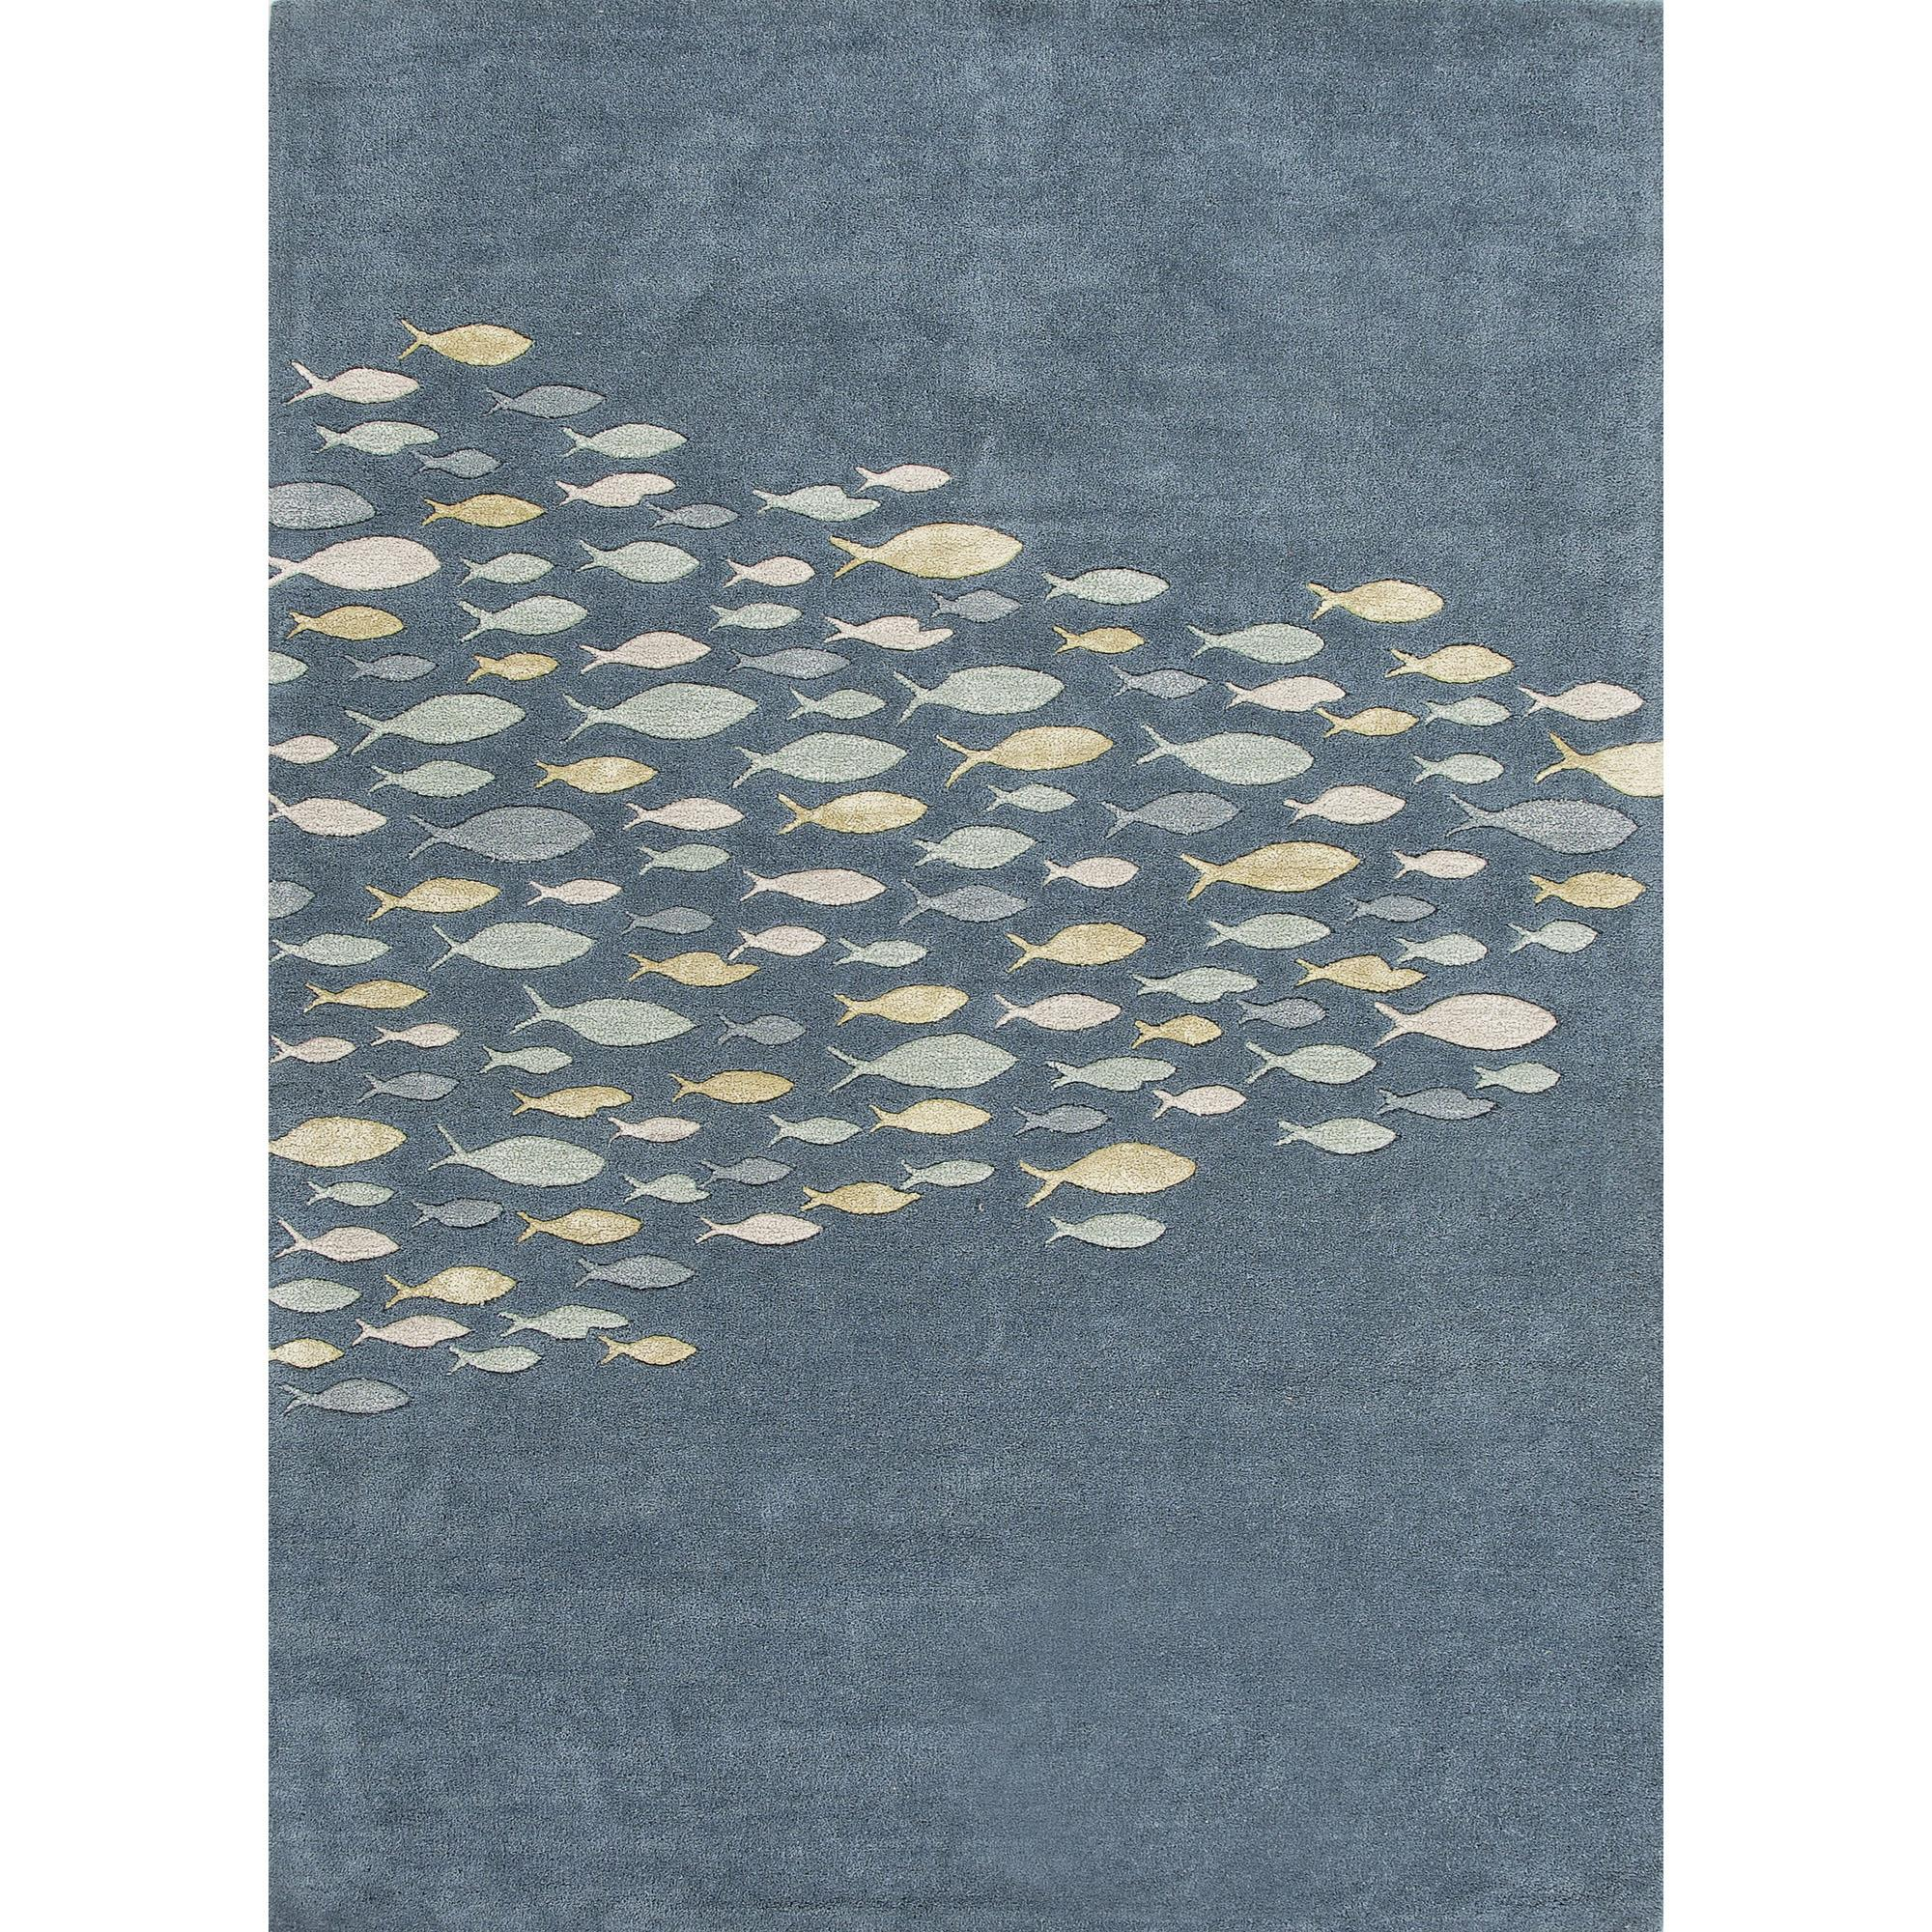 JAIPUR Rugs Coastal Resort 8 x 11 Rug - Item Number: RUG122448